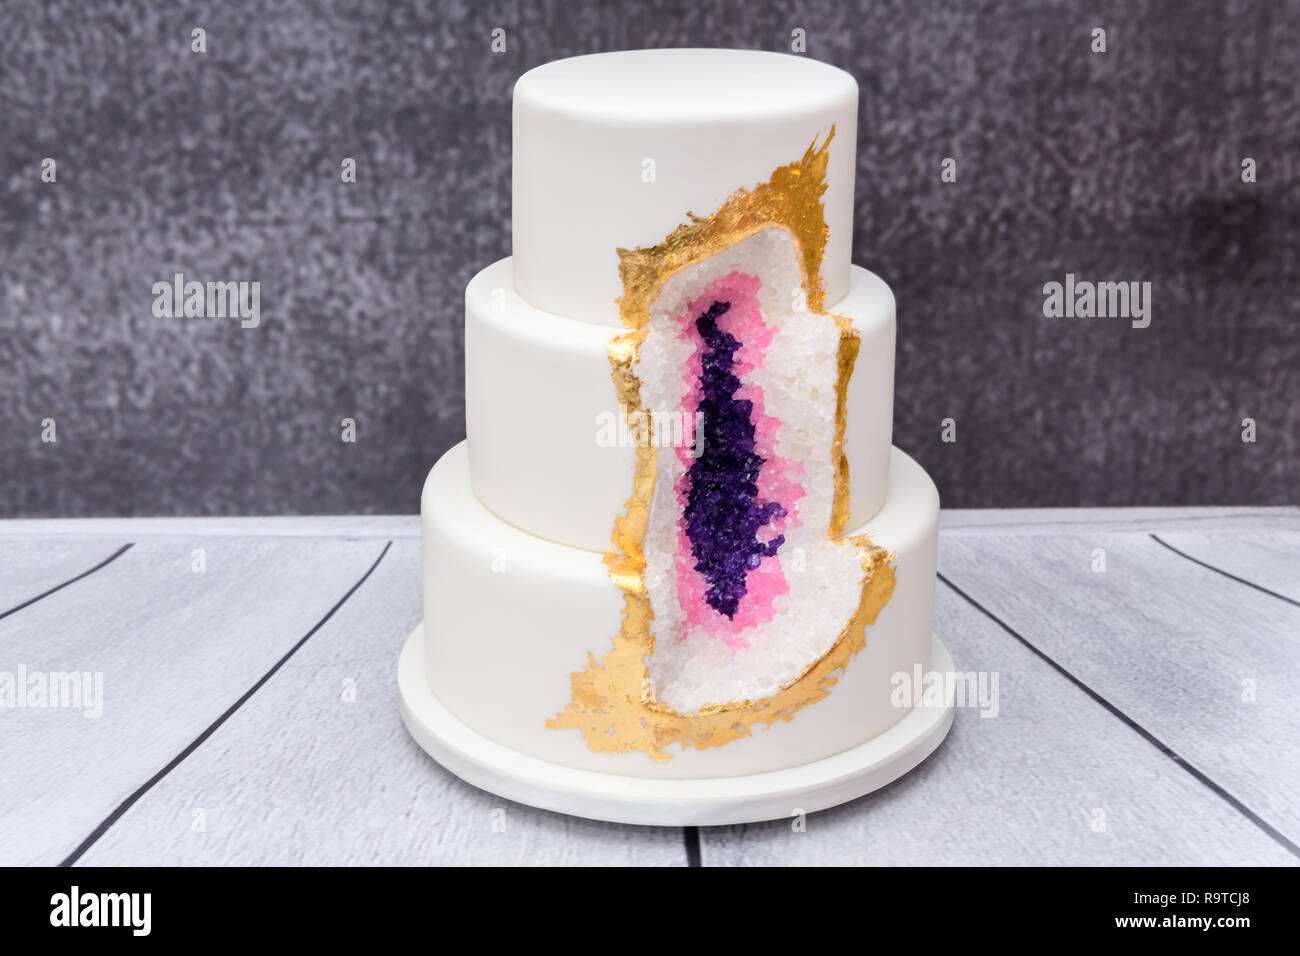 Homemade Geode Wedding Cake